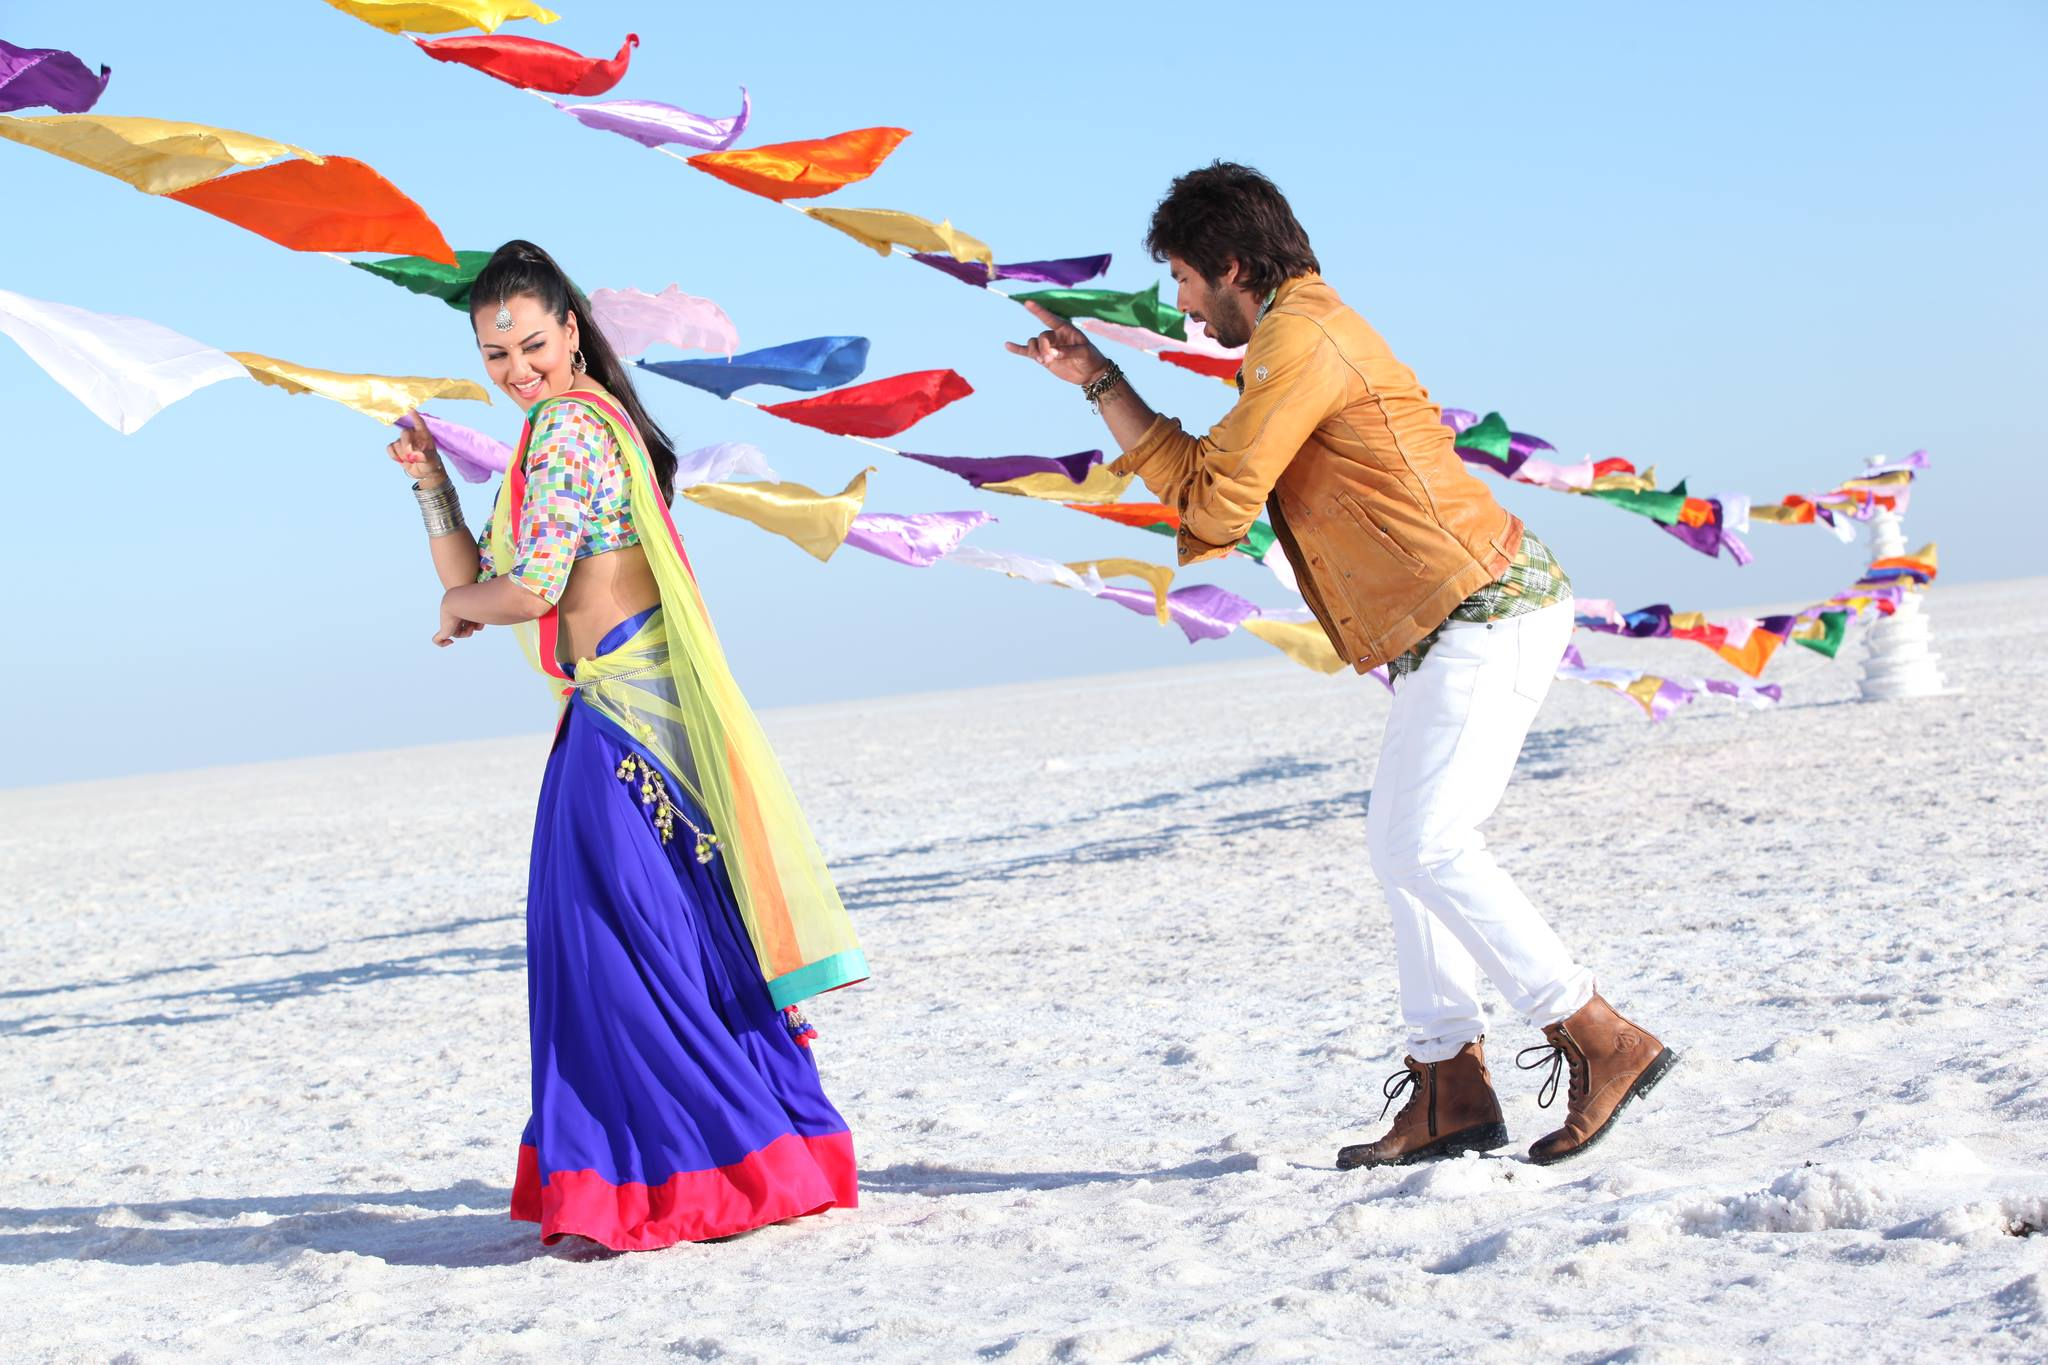 Shahid Kapoor and Sonakshi Sinha are in full on filmi mode in Prabhudeva's R...Rajkumar